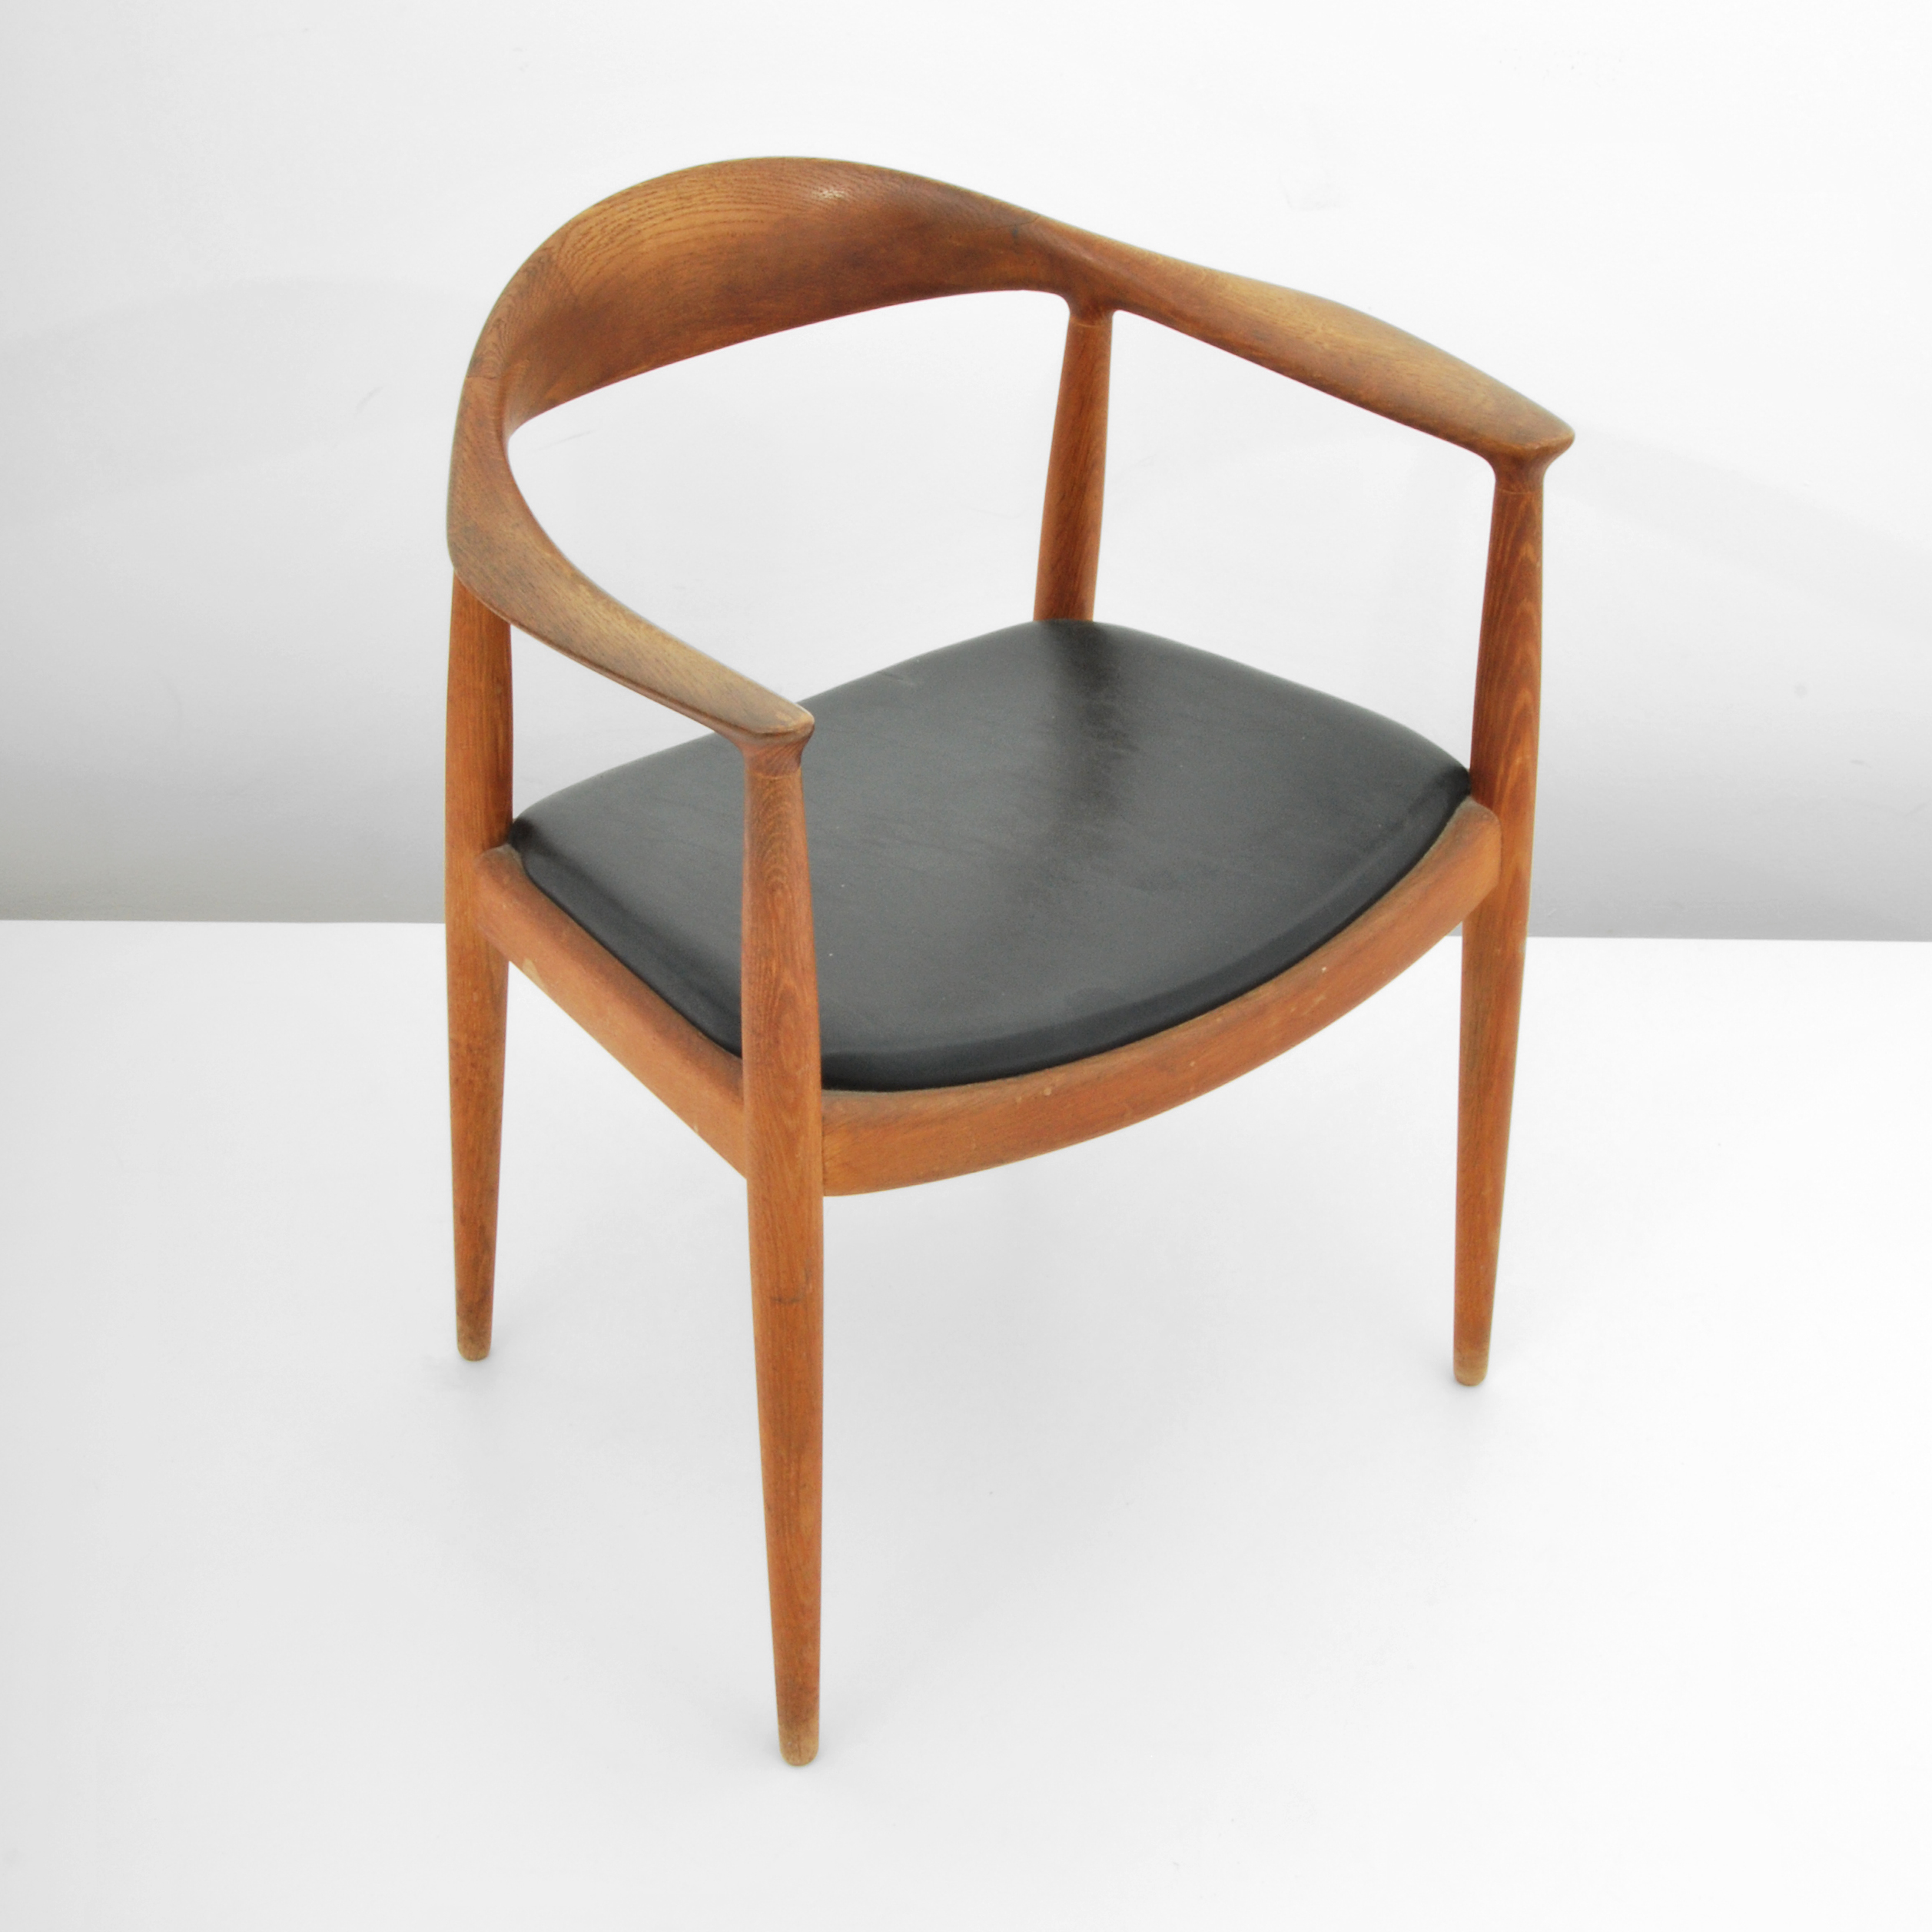 wegners famous round chair also known simply as the chair was chosen